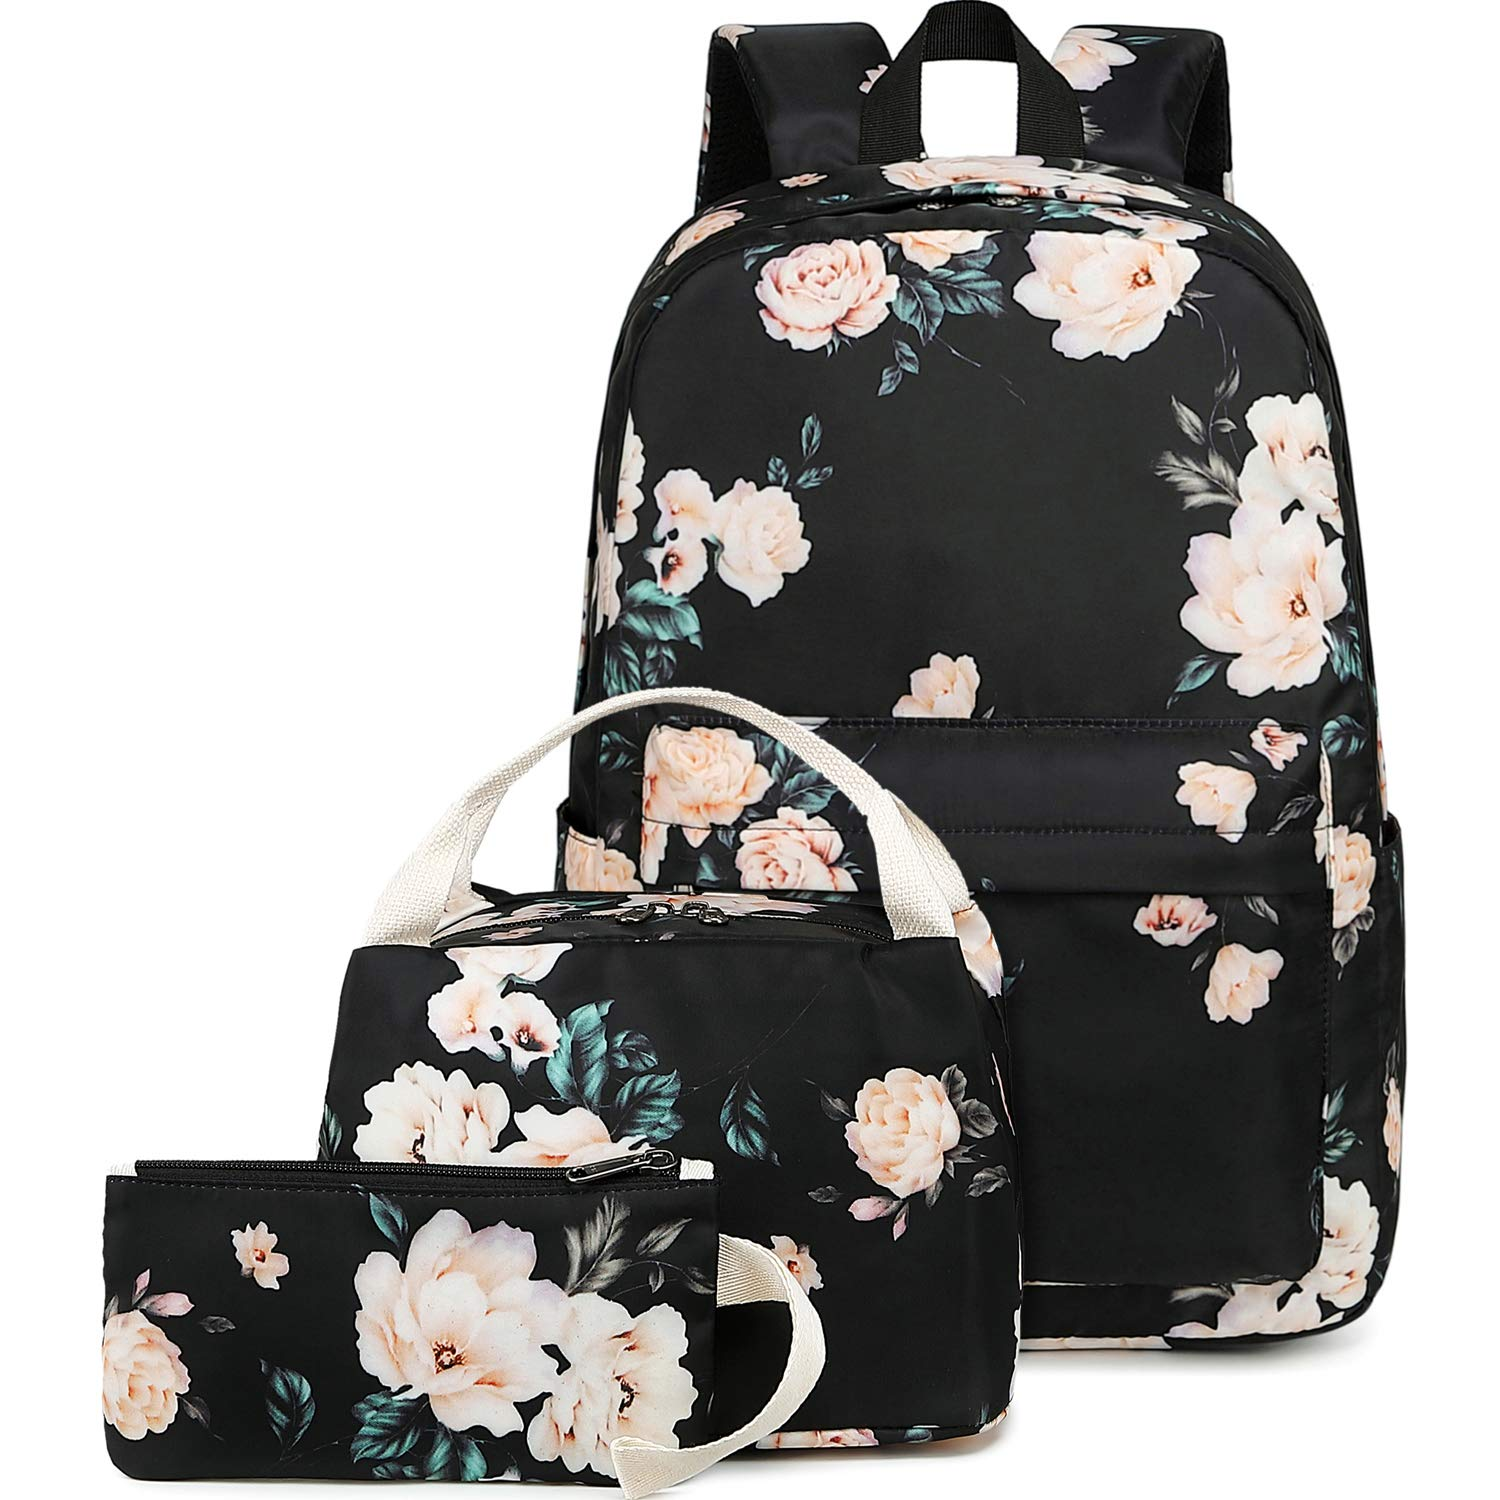 0ade16ed70e6 BLUBOON School Backpack Set Teen Girls Bookbags 15 inches Laptop Backpack  Kids Lunch Tote Bag Clutch Purse (E0066 Black)